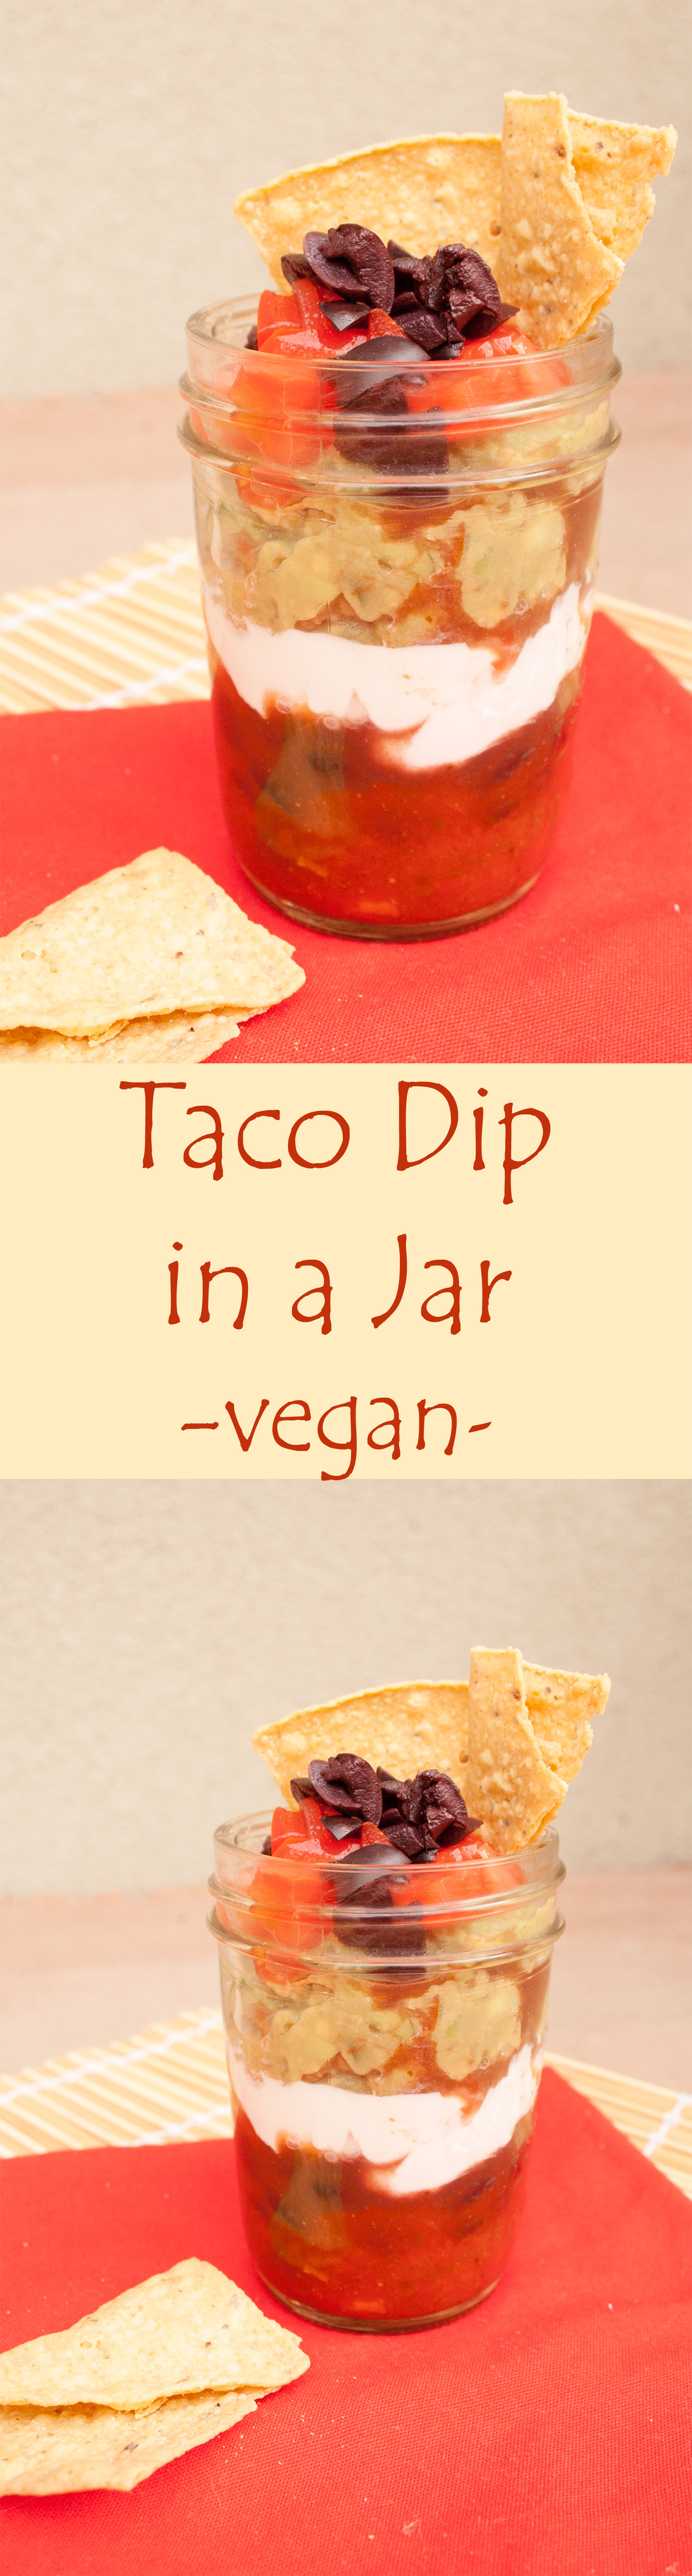 Taco Dip in a Jar collage photo with text.